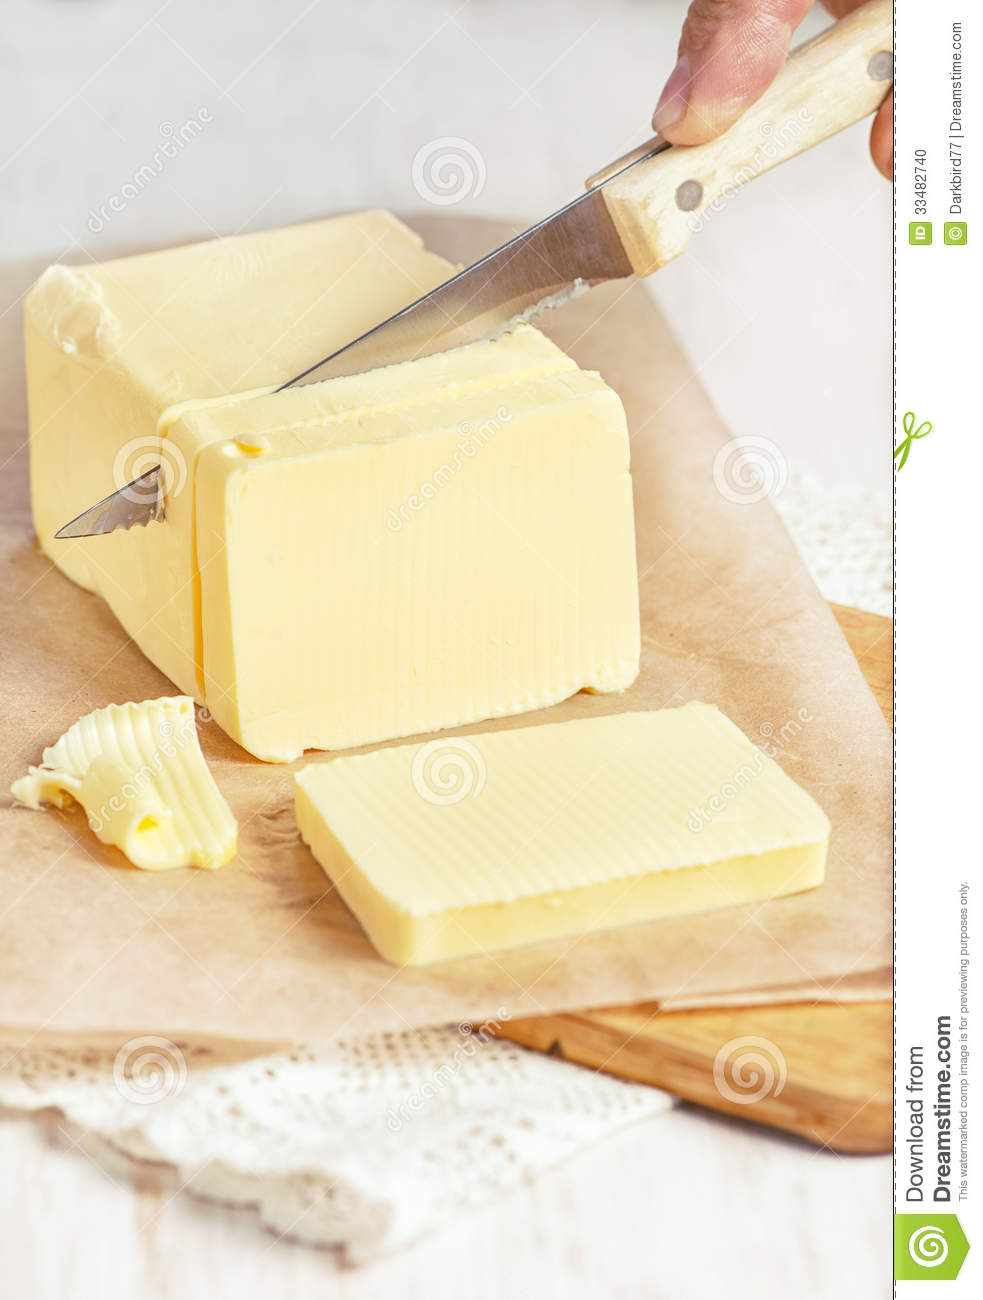 Cutting A Piece Of Paper : Butter cutting by knife stock photo image